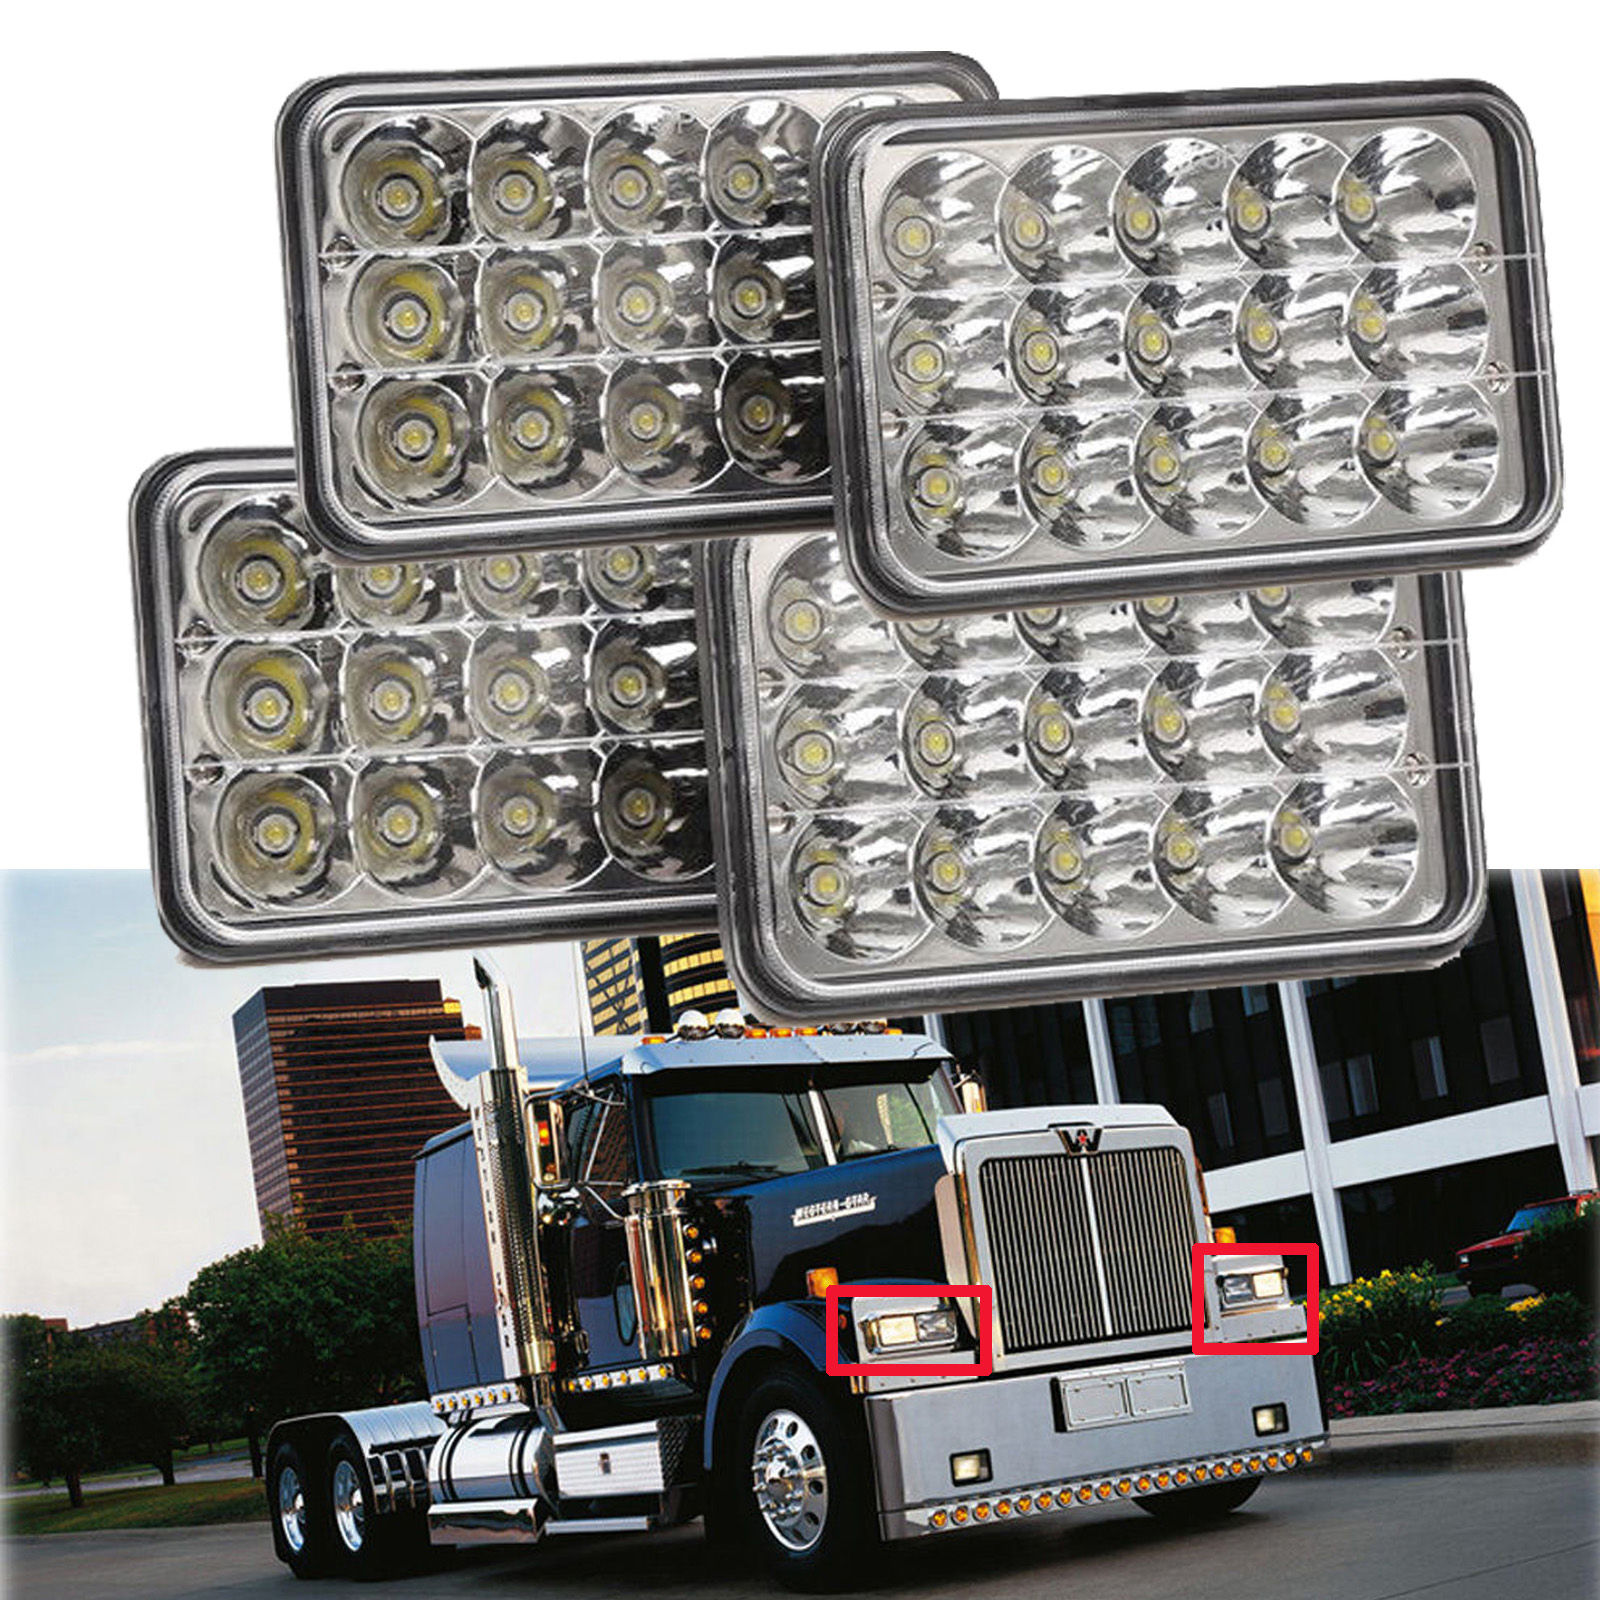 Western Star 4900 >> Details About For Western Star 4900 Semi Truck Peterbilte 357 378 4 X6 Led H L Headlight Lamp